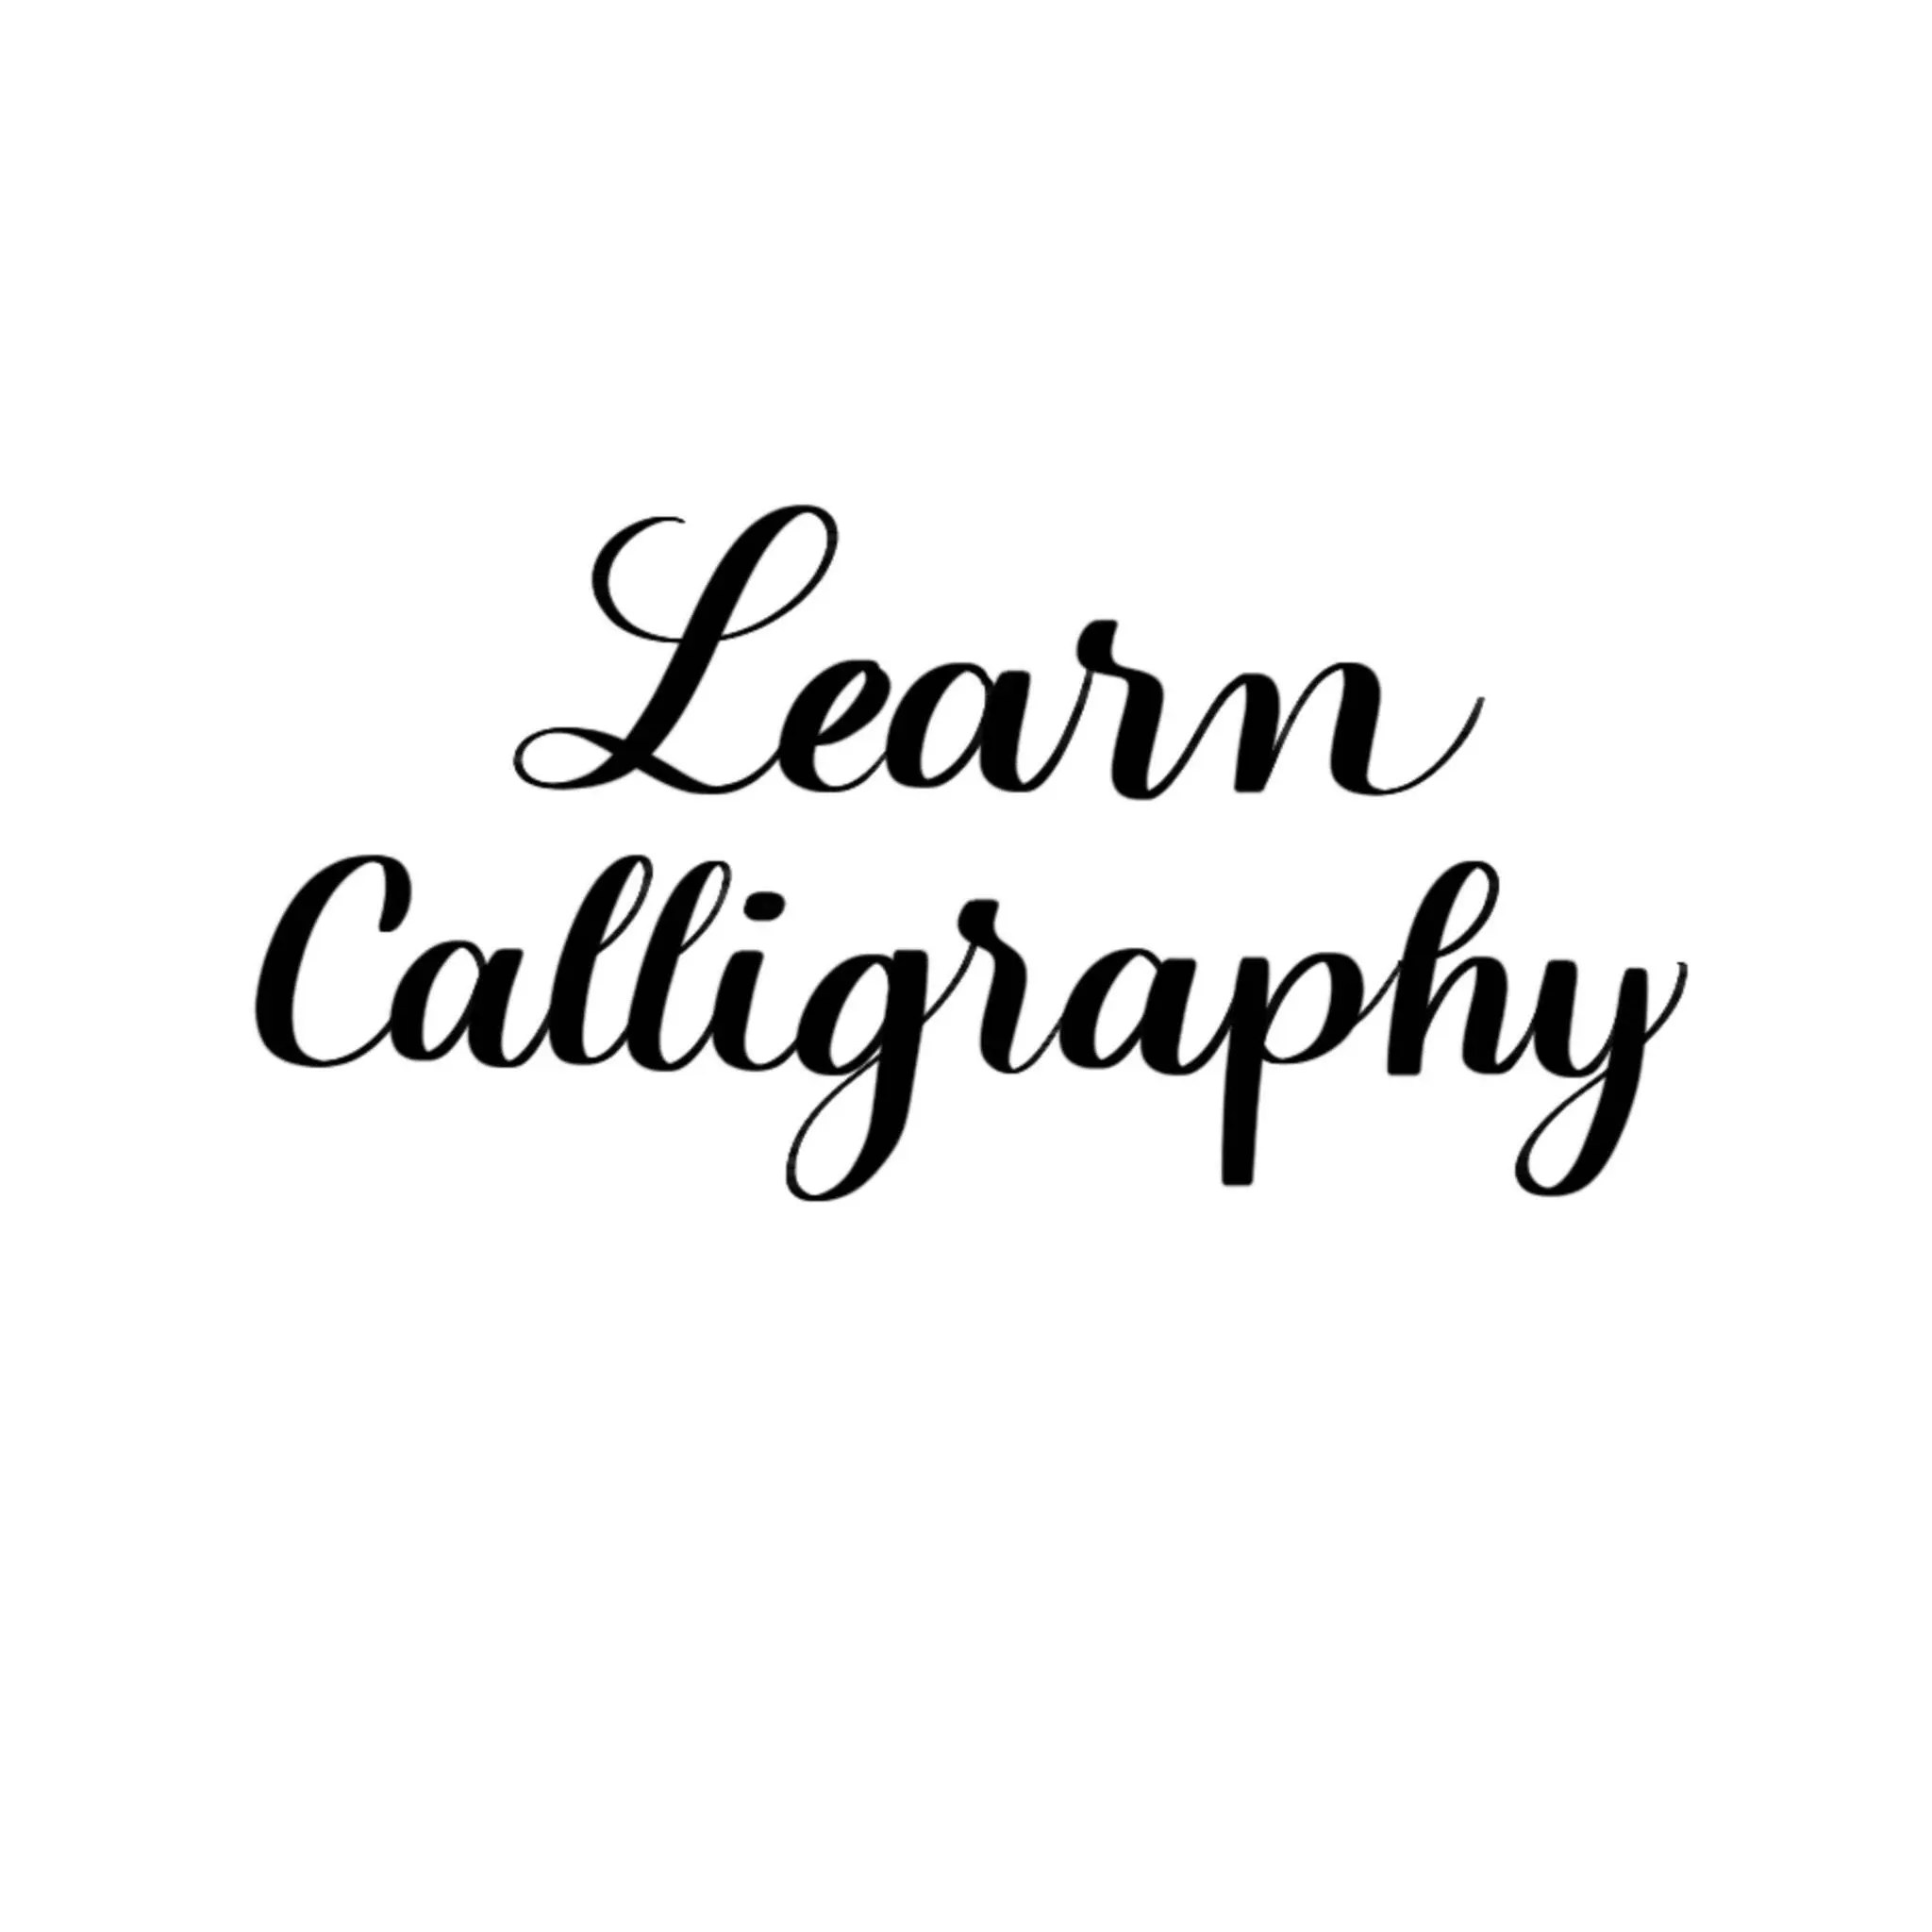 Traditional Calligraphy Workbook Printable Brush Lettering Workbook Calligraphy